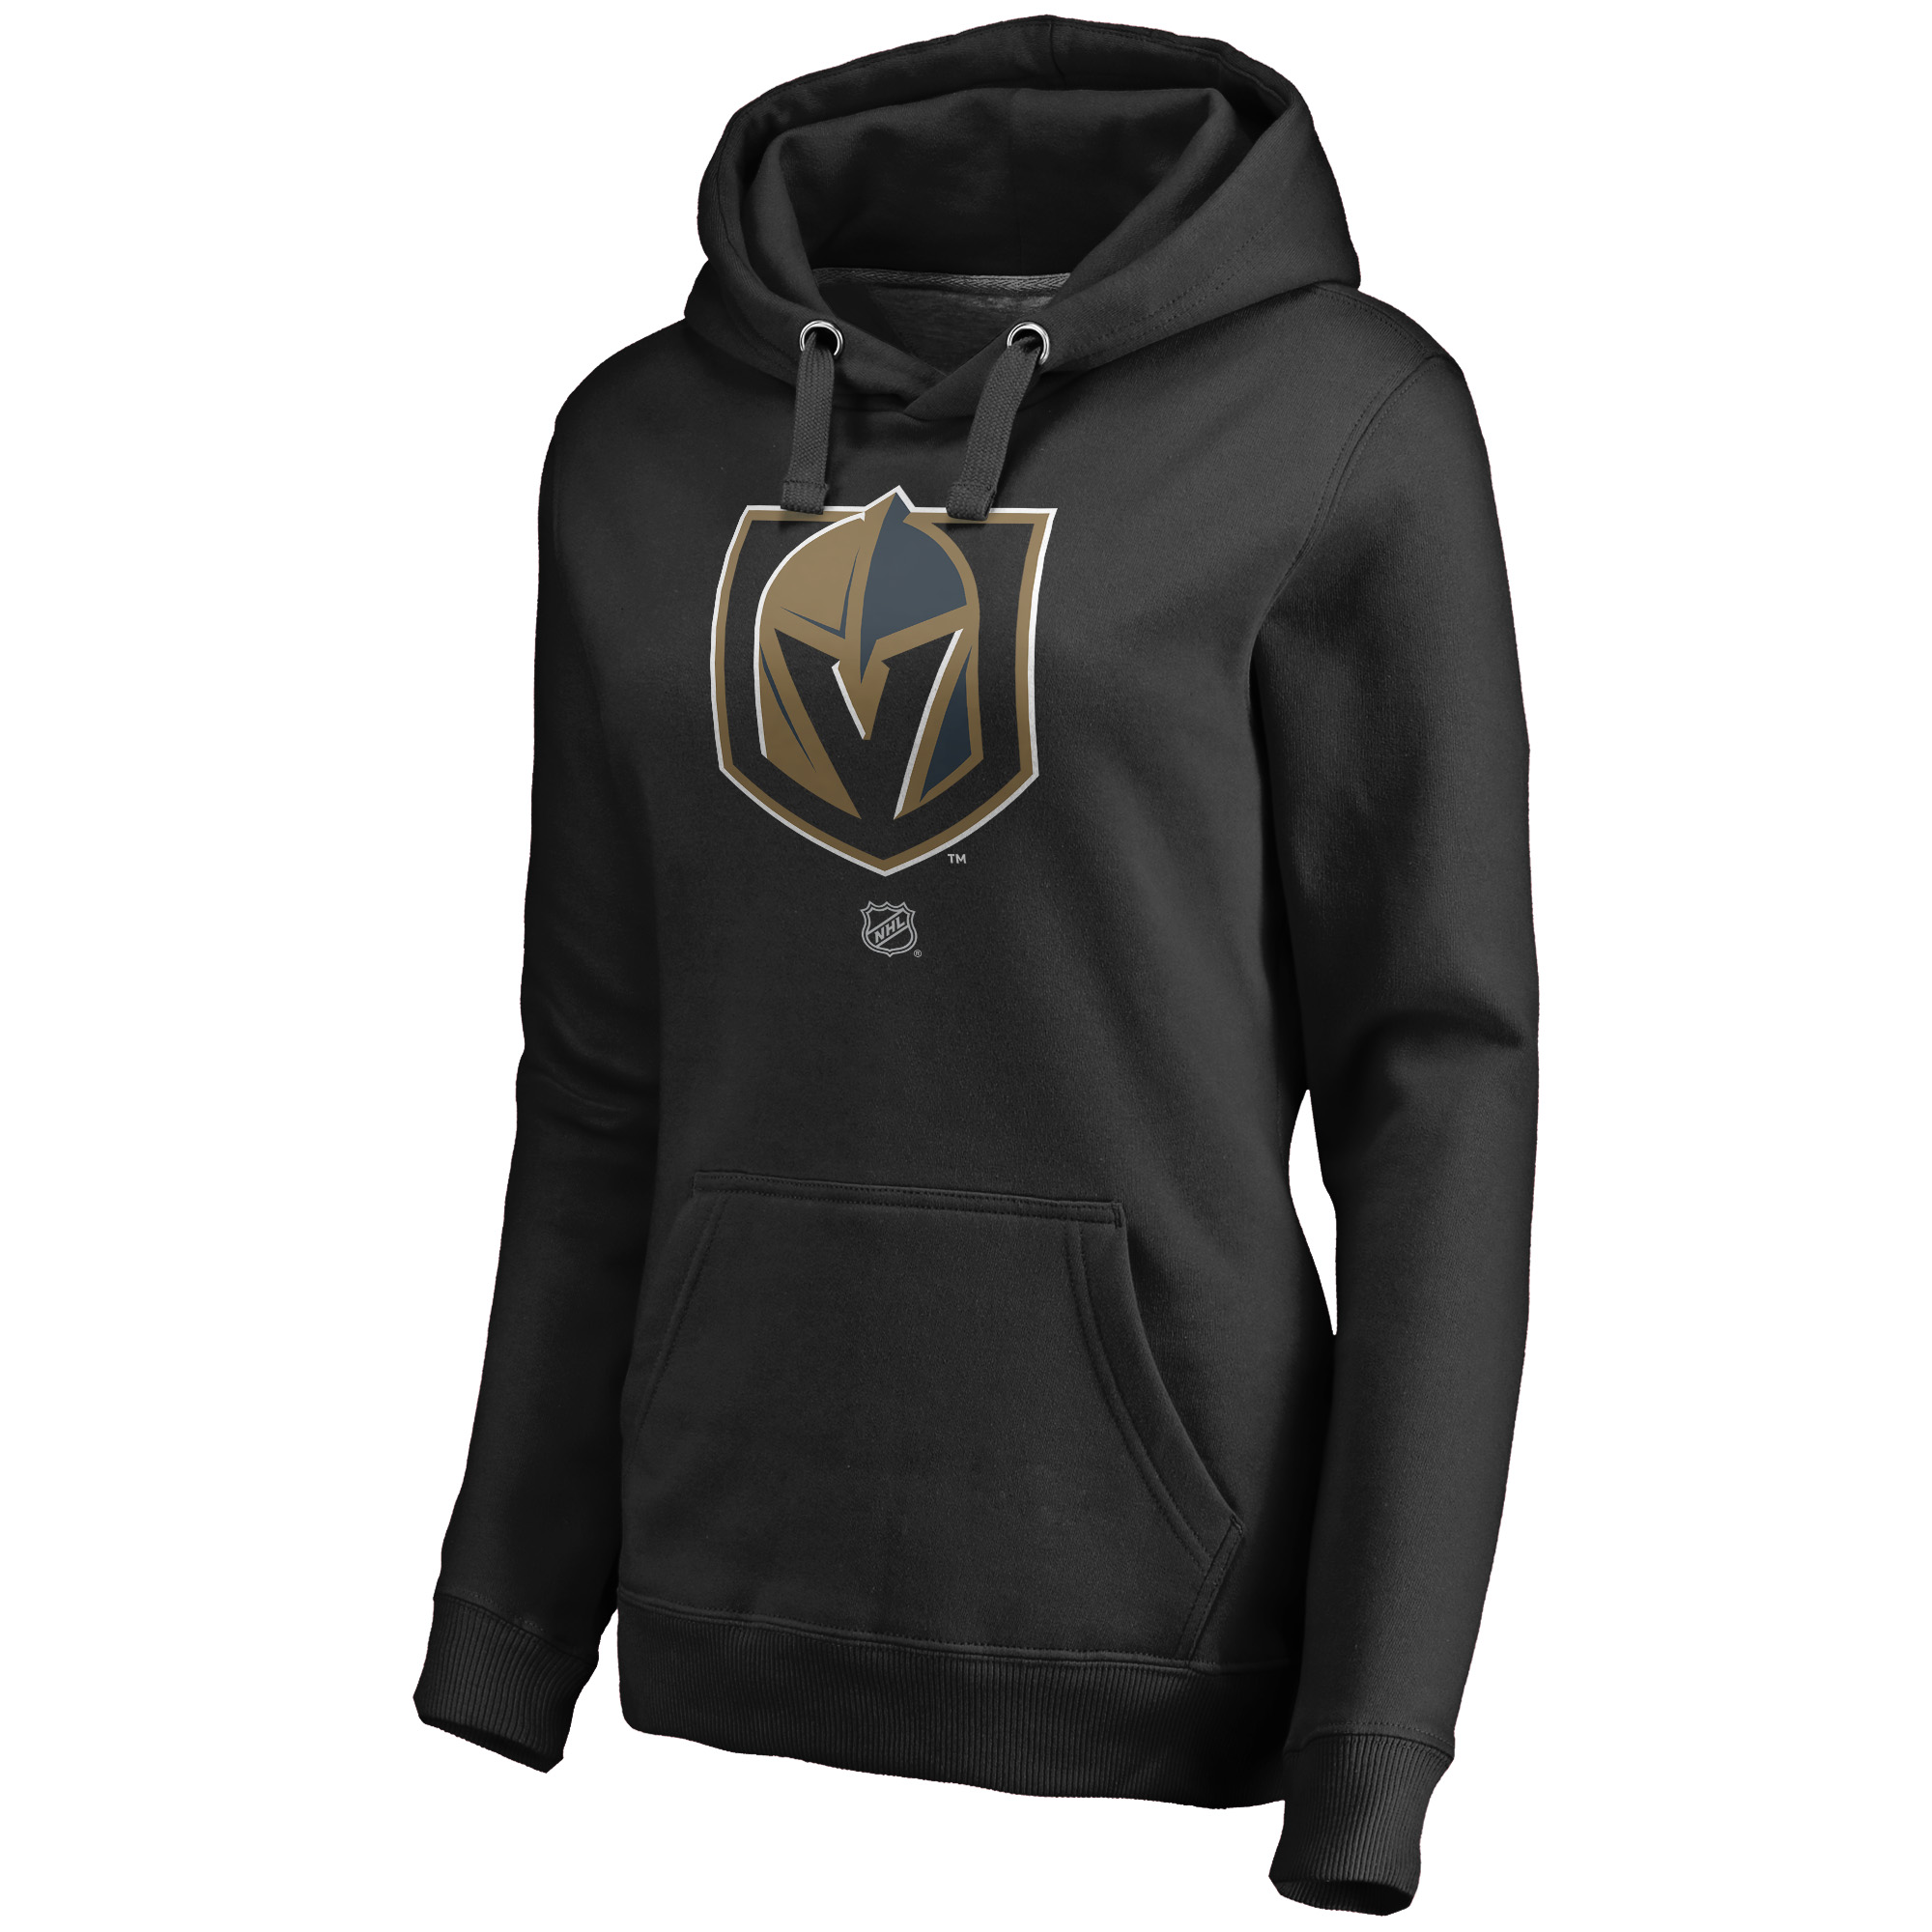 7e16b5e7b Vegas Golden Knights Fanatics Branded Women s Personalized Team Authentic  Pullover Hoodie - Black - Walmart.com